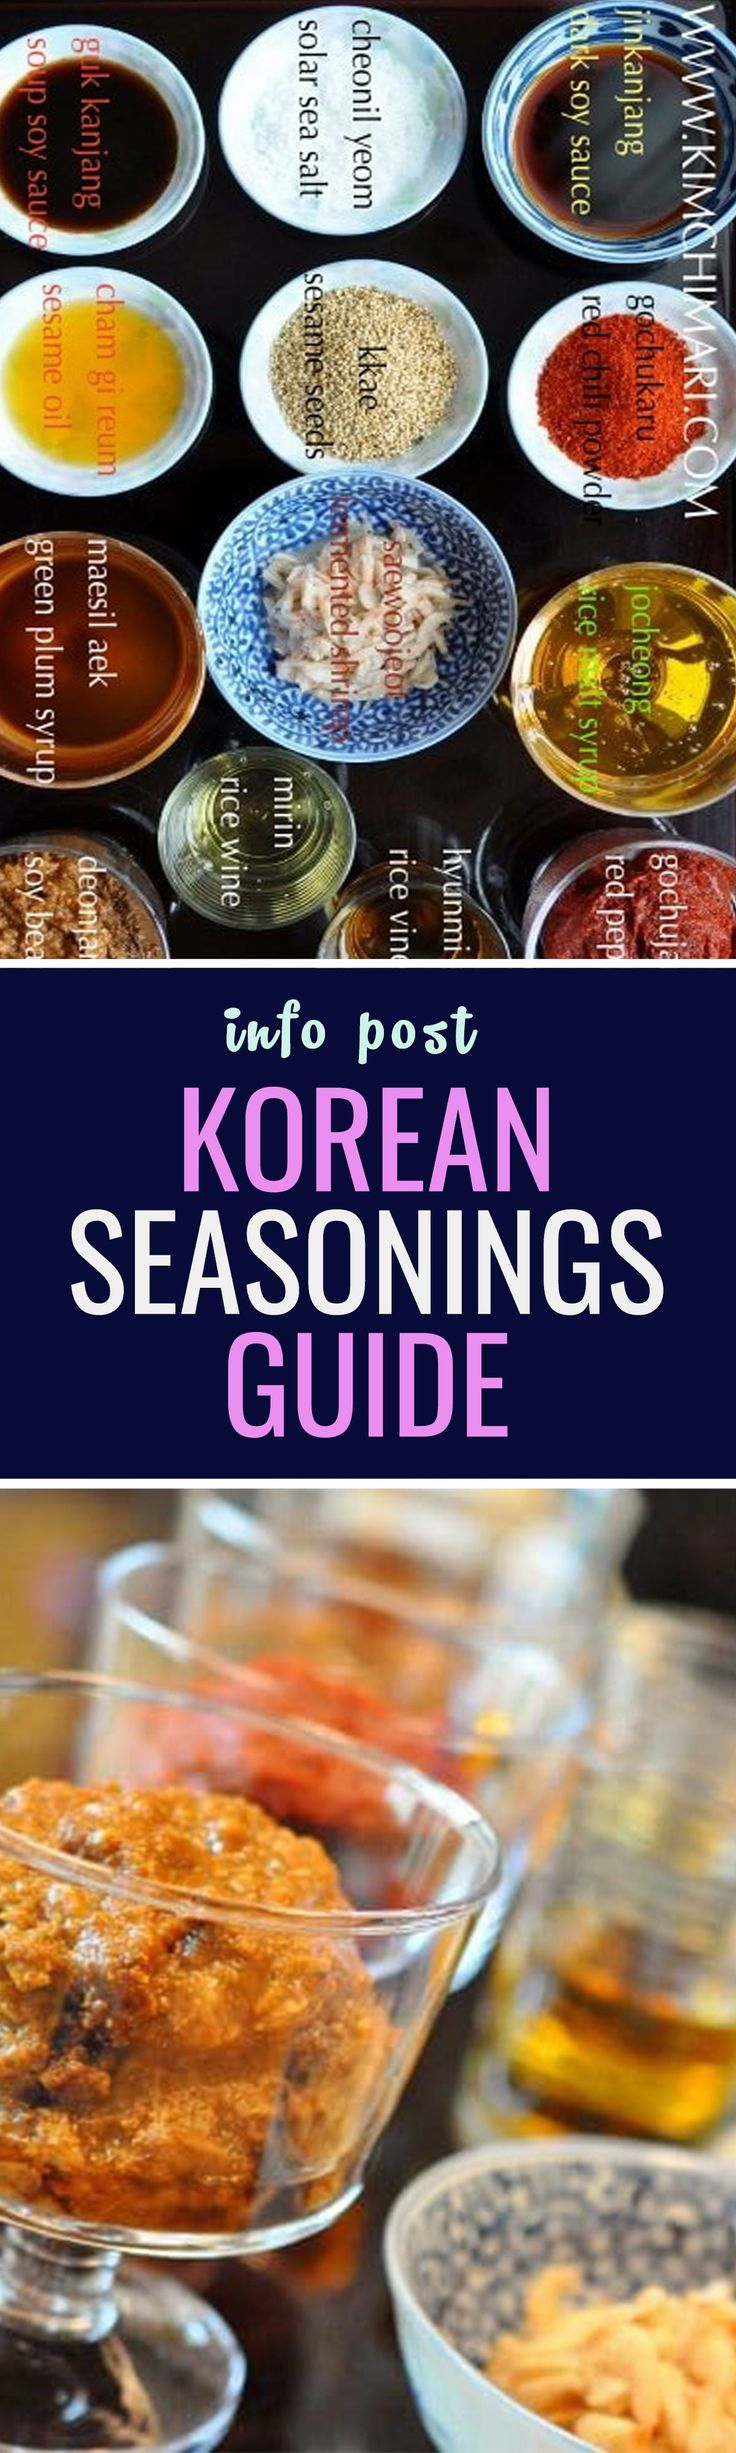 So what do you need for a Korean kitchen? Here is a guide for the basic sauce and condiments needed :) {Read|Find more} about {korean cuisine|korean food|korea food|south korean food} {clicking| - clic} link below: http://foodyoushouldtry.com/33-best-dishes-taste-korea/